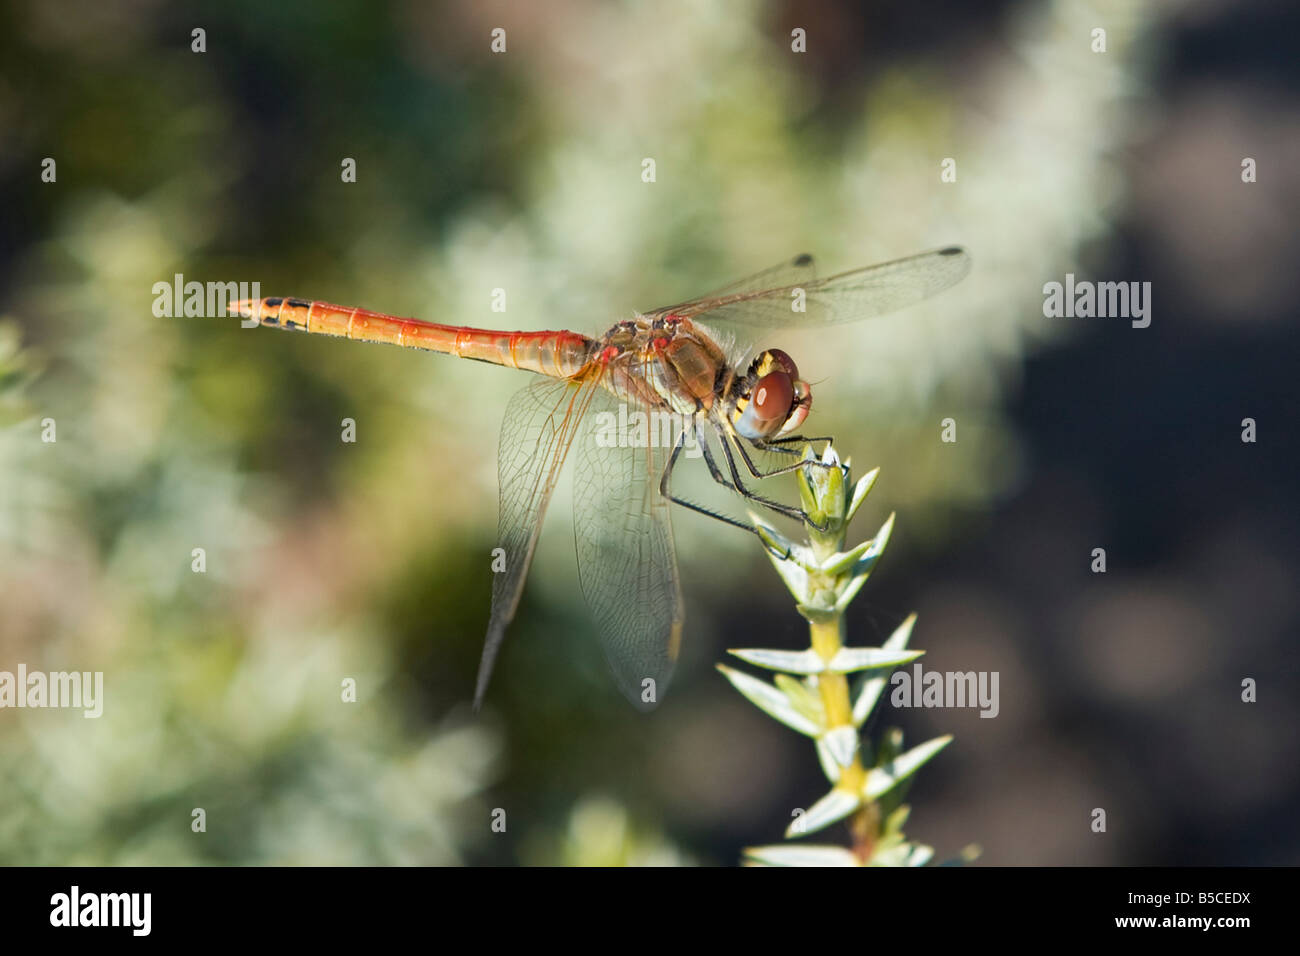 Common male Red-Veined Darter Dragonfly, Sympetrum striolatum, Island of Rhodes, Greece Stock Photo